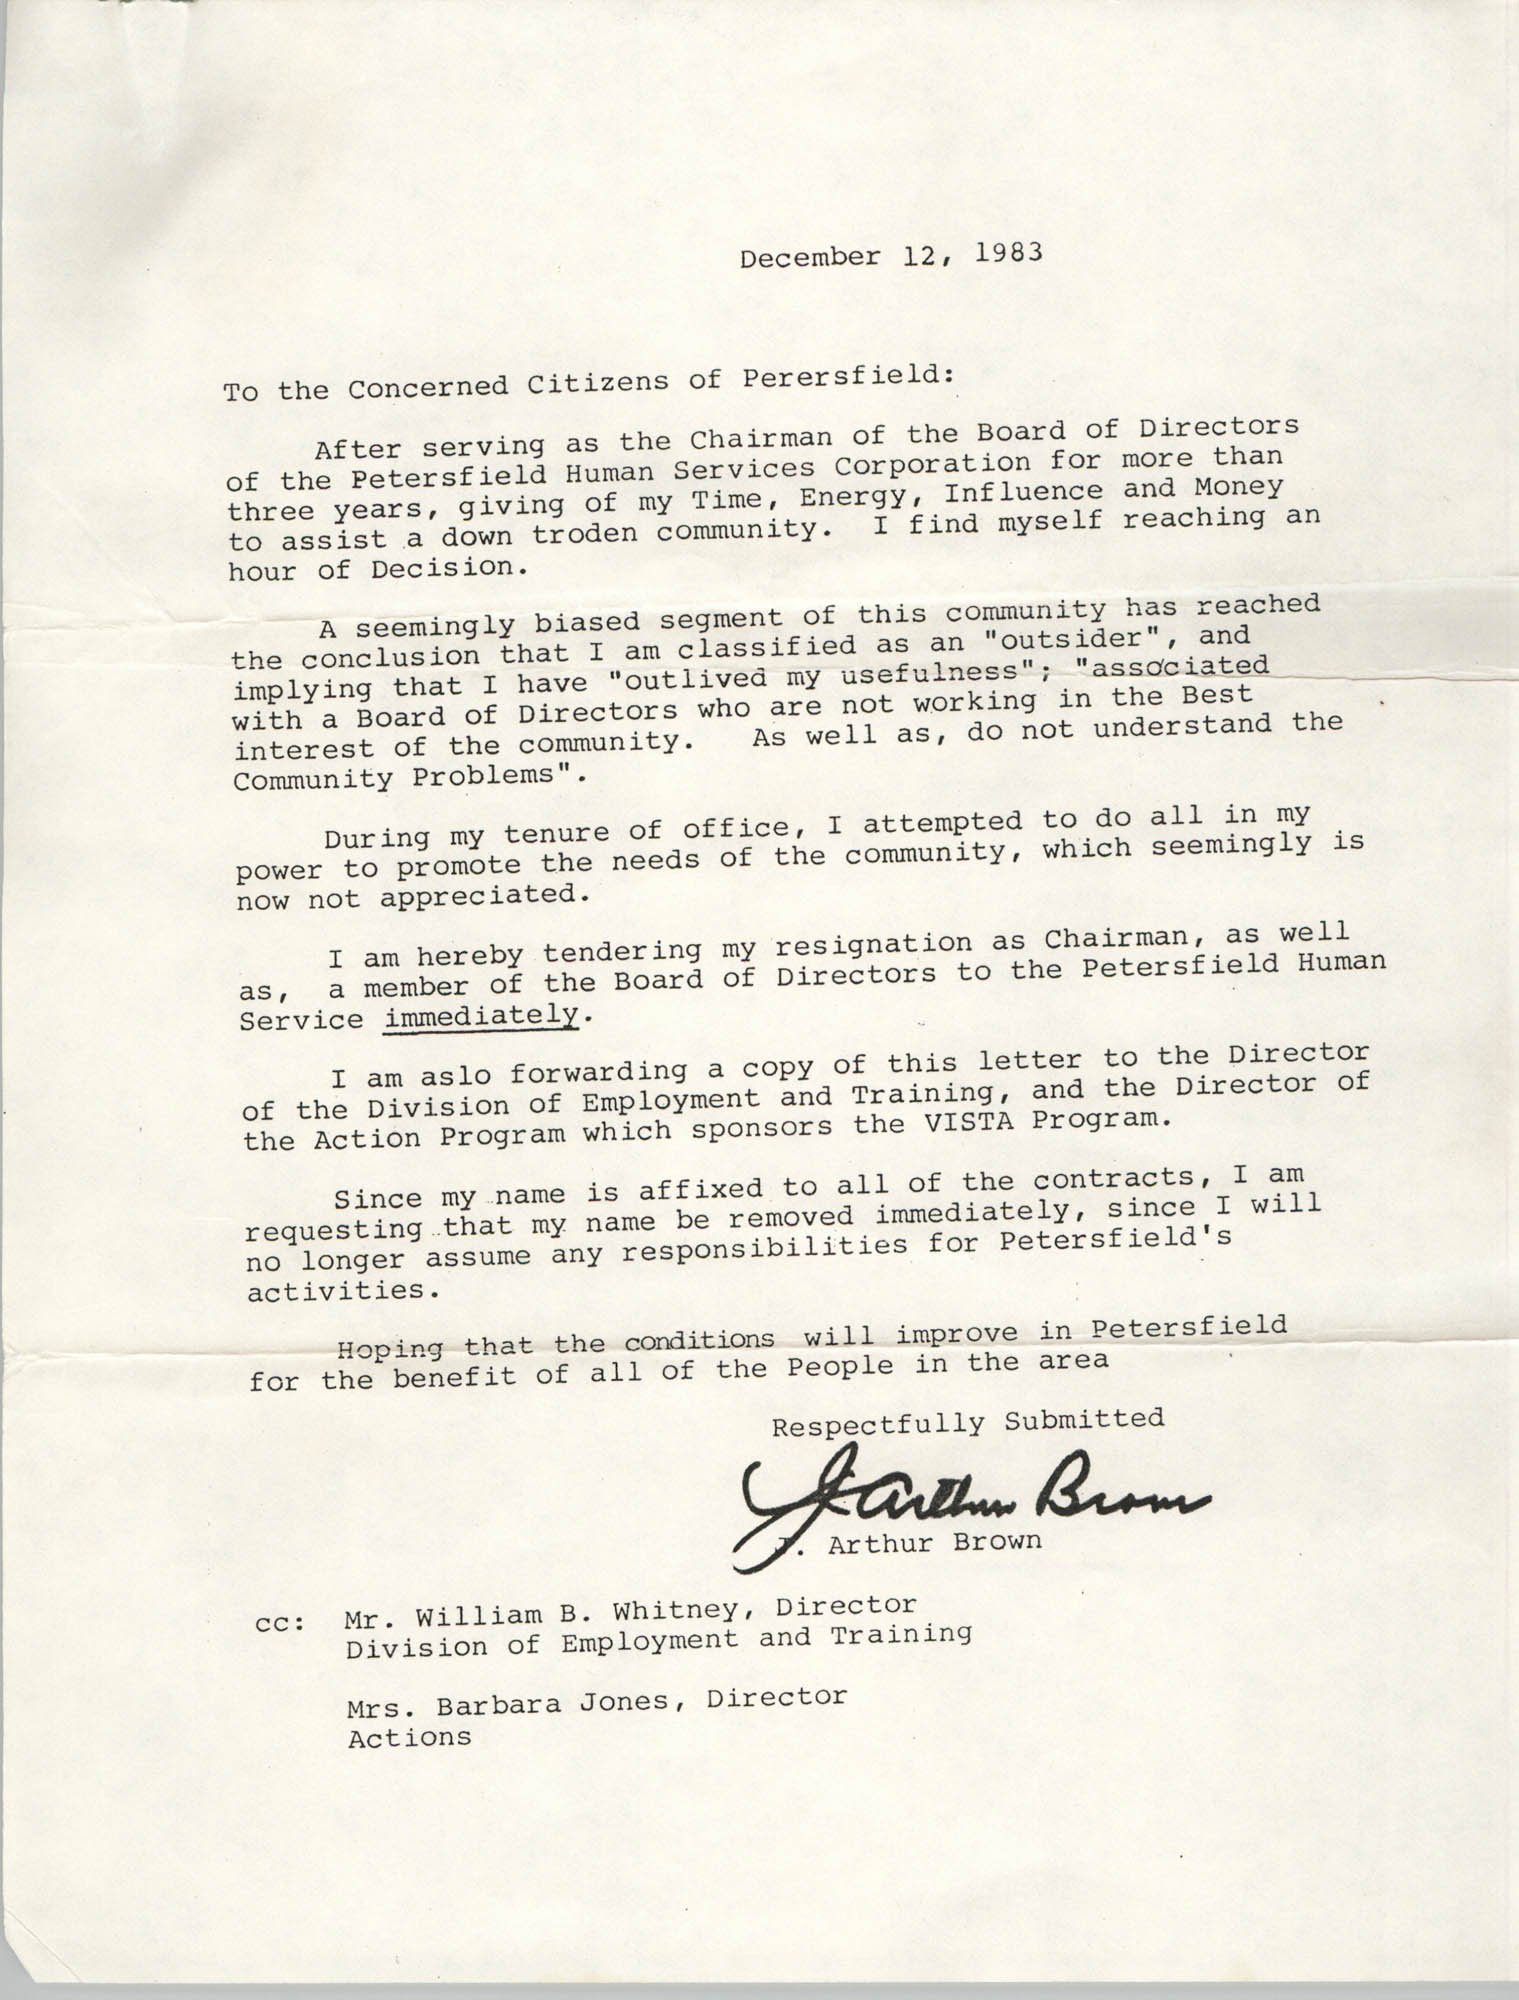 Letter from J. Arthur Brown to Citizens of Petersfield, December 12, 1983